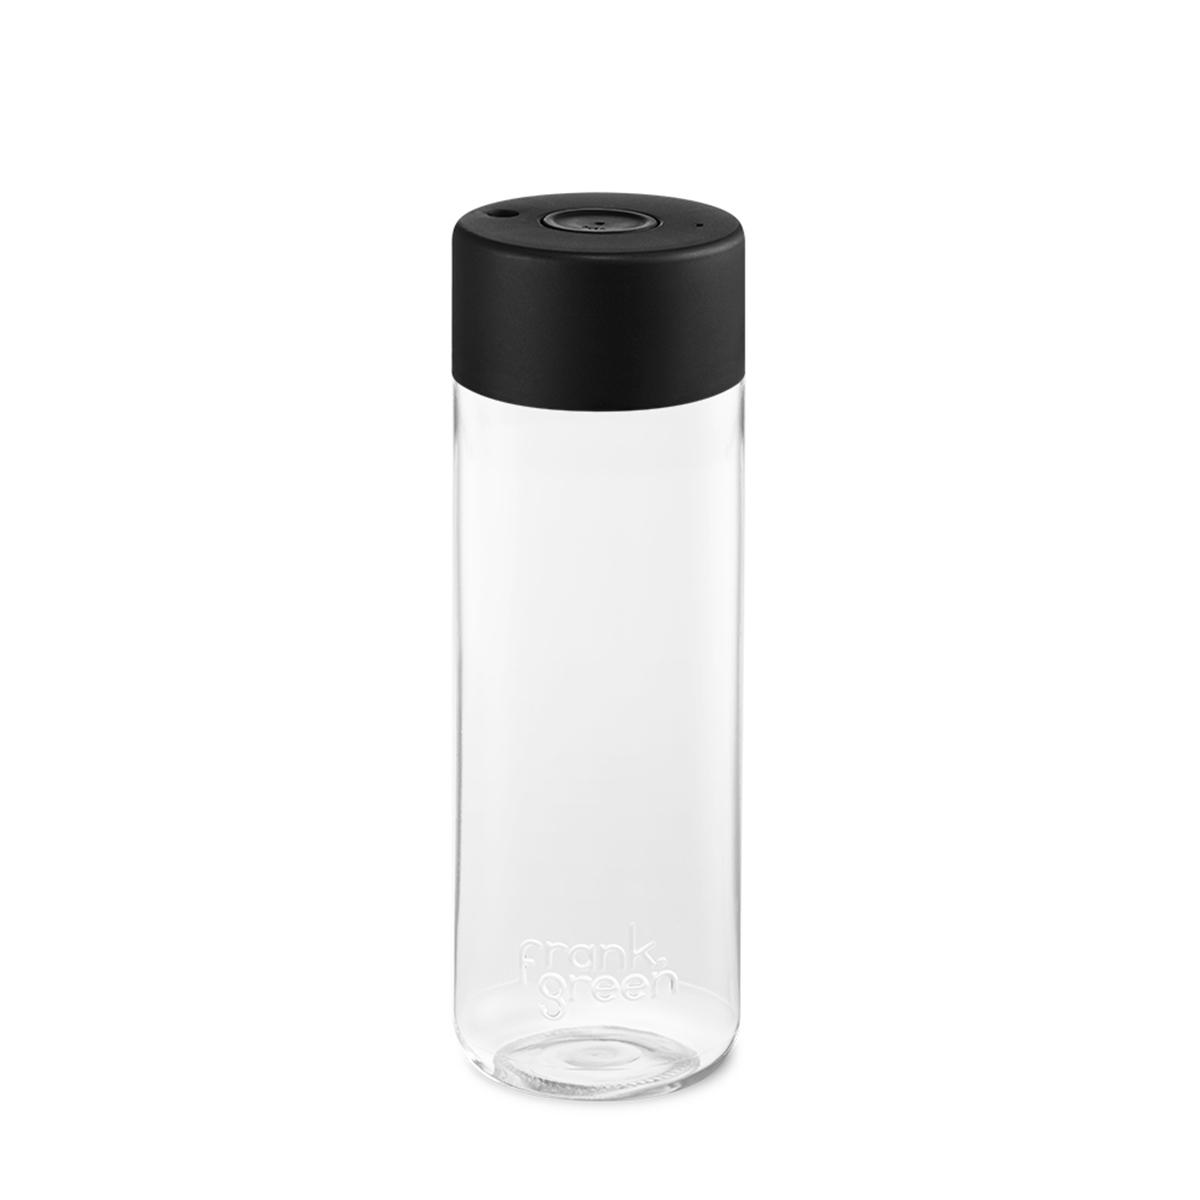 Frank Green Next Gen Reuseable Bottle - Black - 25oz